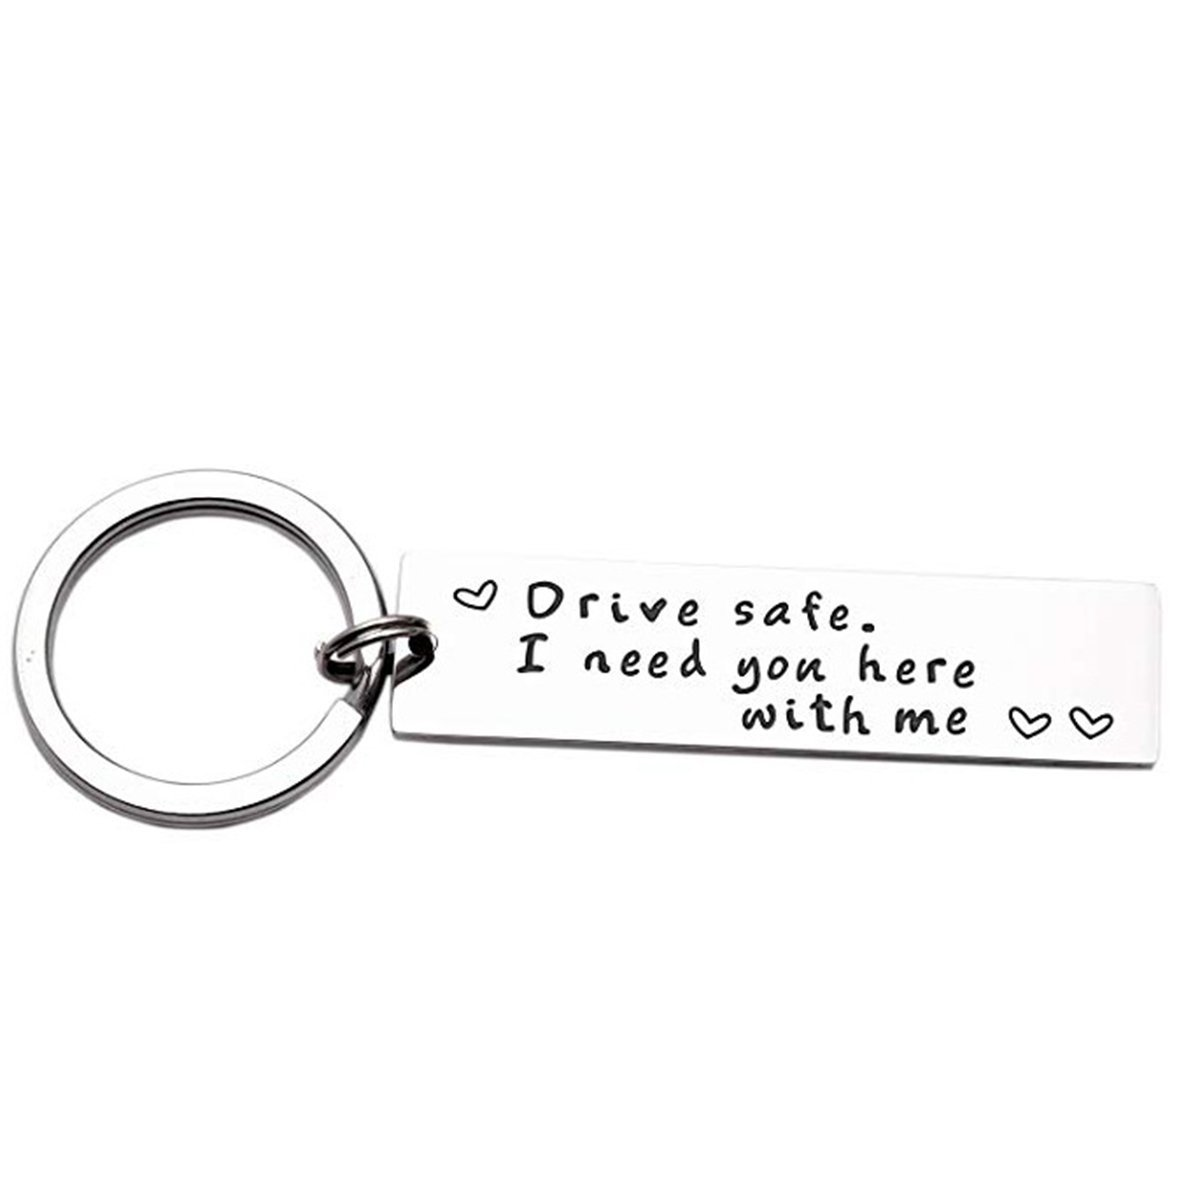 iWenSheng Drive Safe Handsome I Love You Keychain Gifts for Boyfriend  Husband Dad Valentines Day Gift Christmas Gift Stocking Stuffer, Staidness  Steel